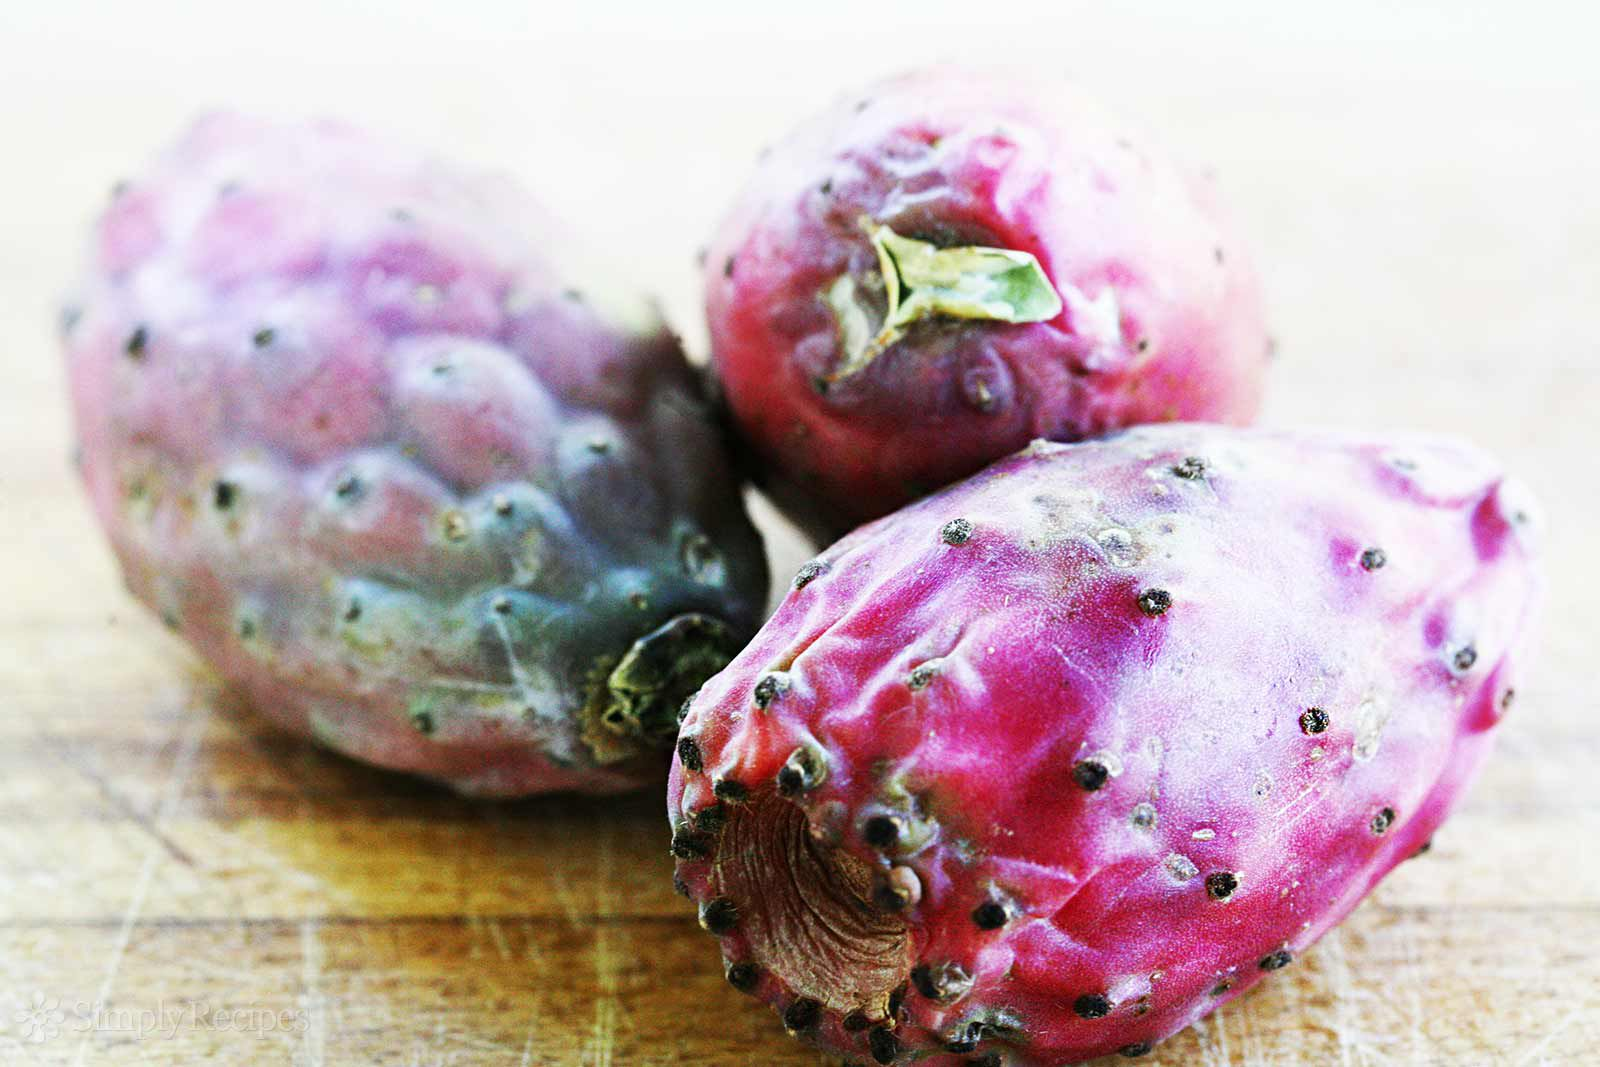 Cactus Pear or prickly pear fruit on cutting board